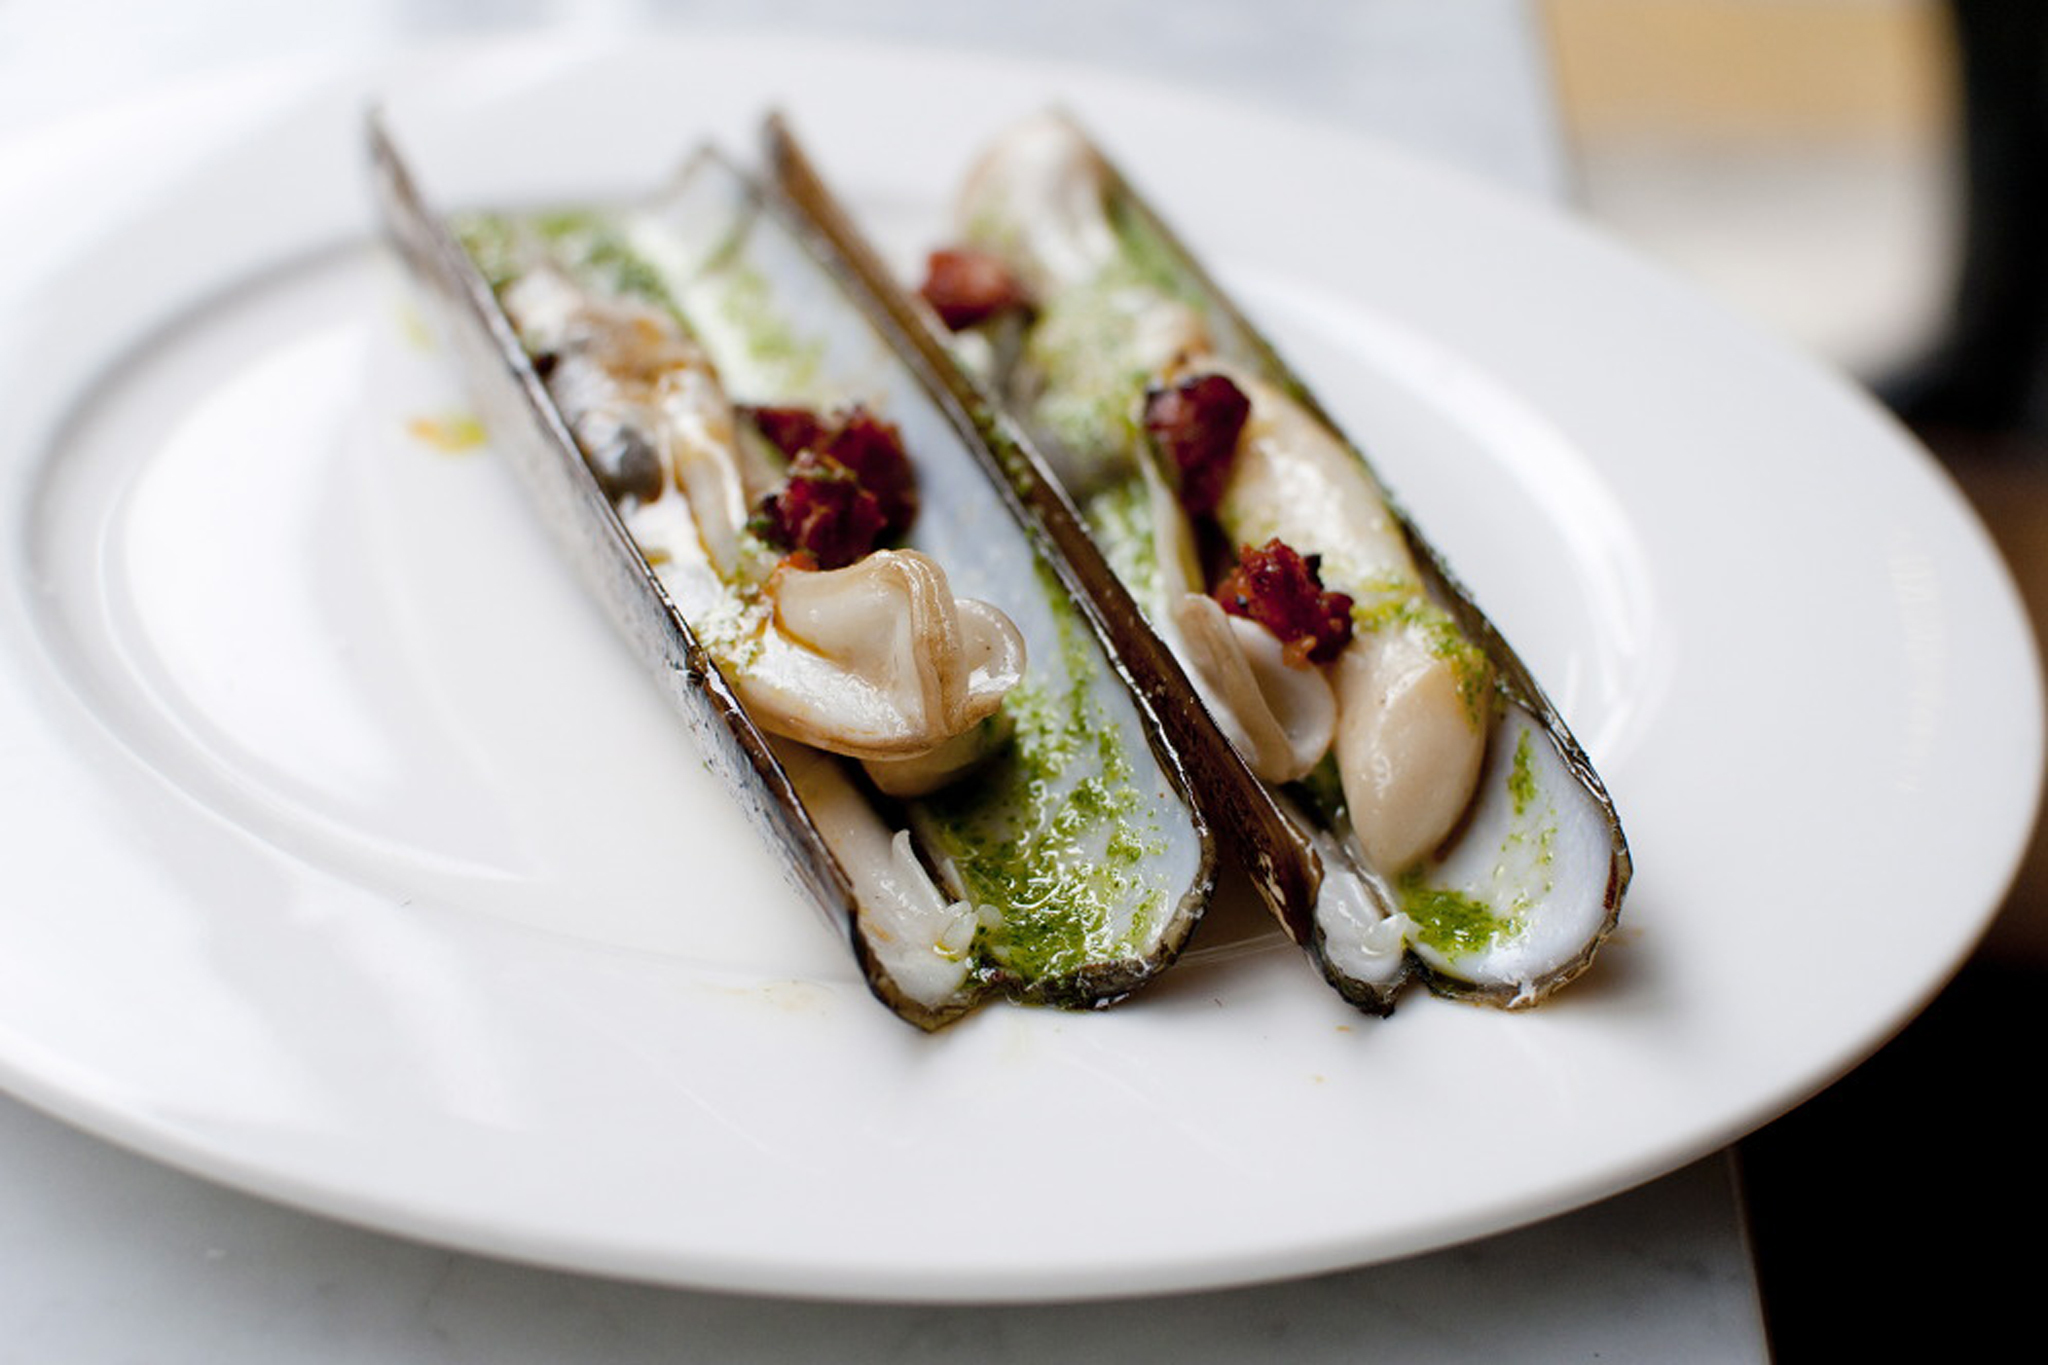 Grilled razor clams at José